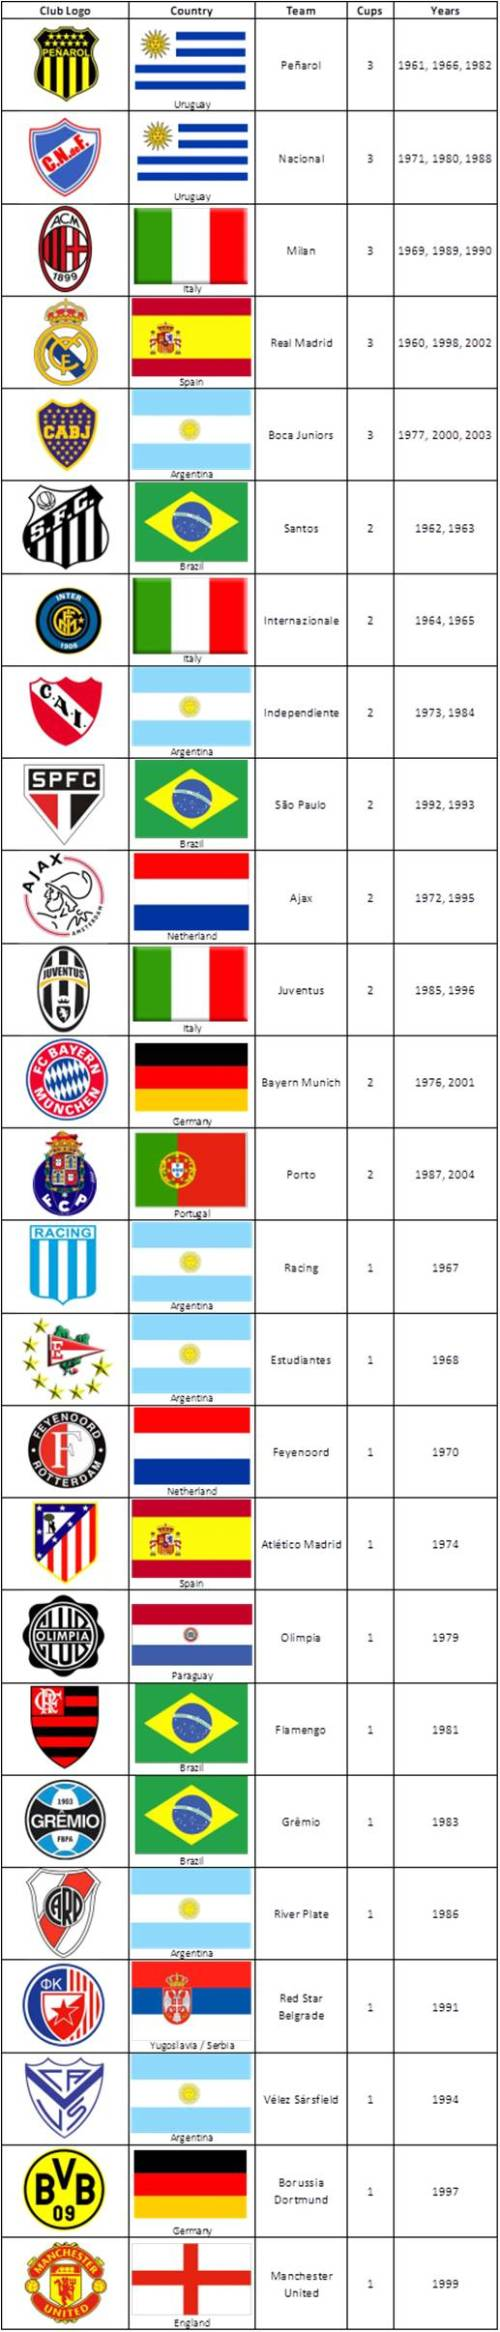 Intercontinental Cup Champions 1960 - 2004